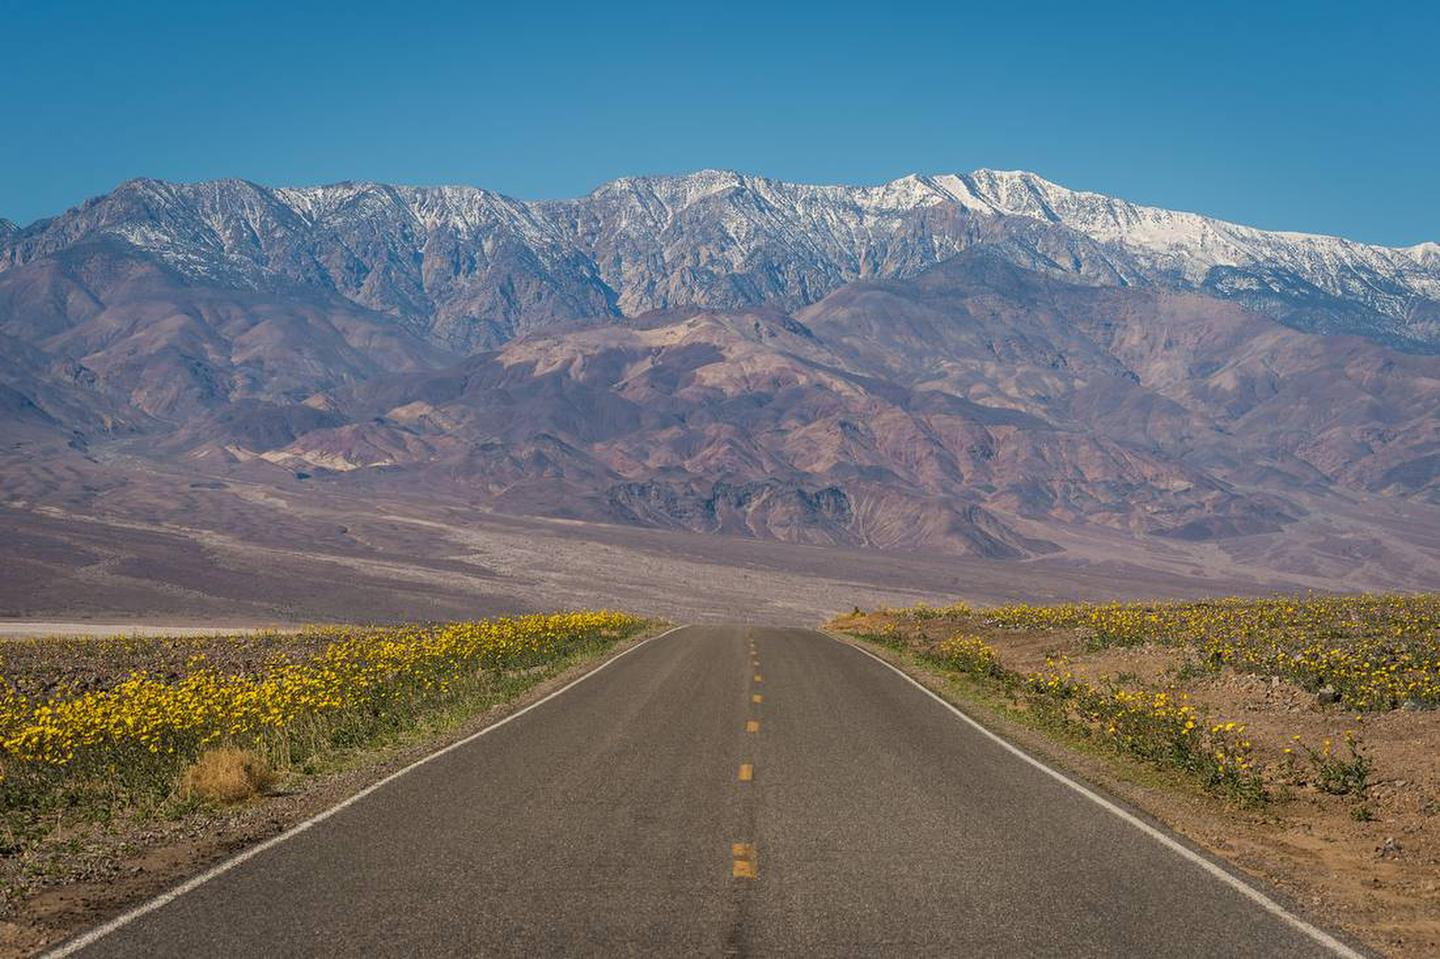 paved road lined with yellow flowers, snow-covered mountains in backgroundSpring in Death Valley